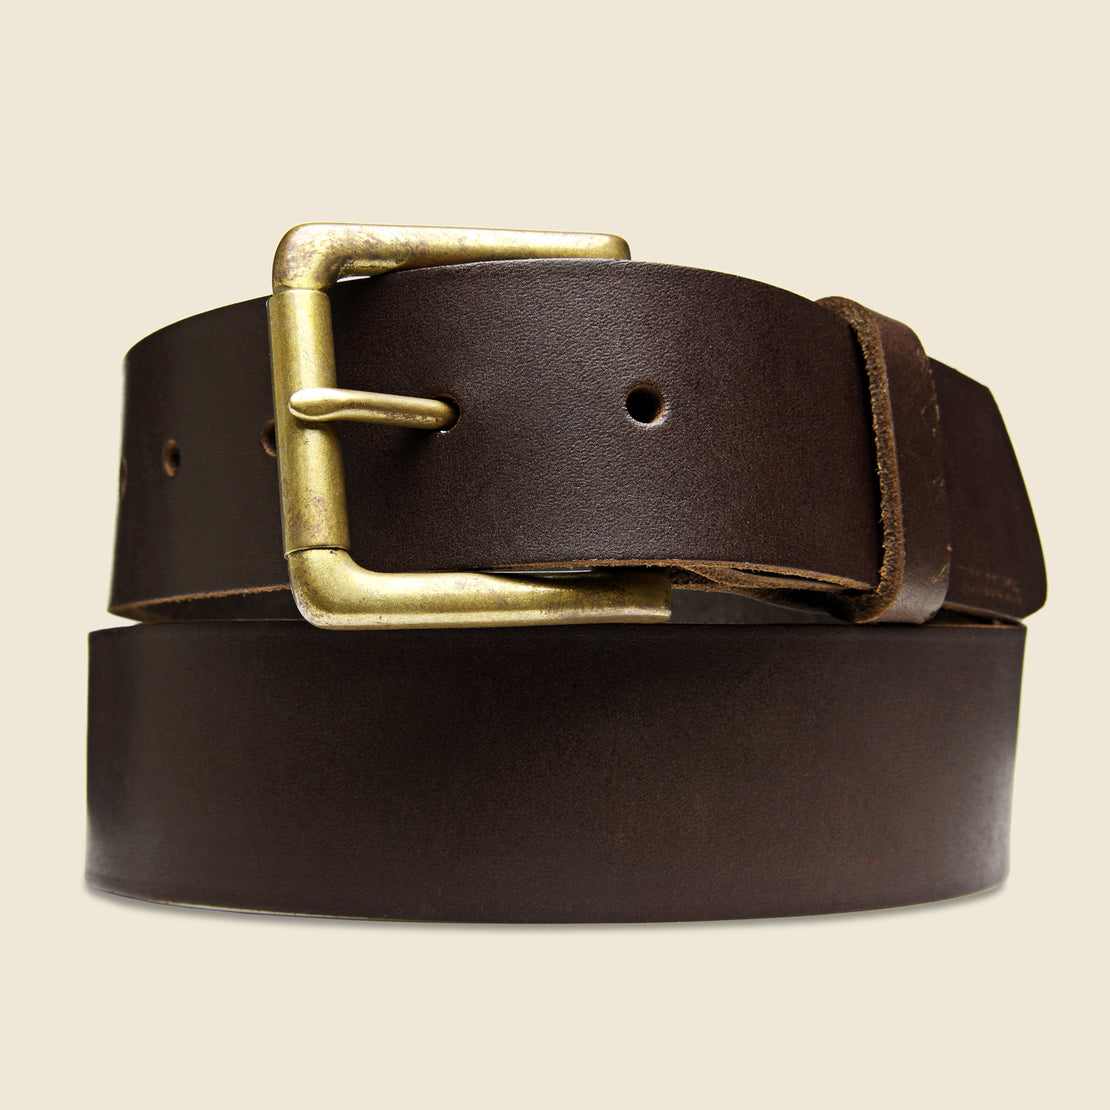 BILLYKIRK Roller Bar Belt - Brown